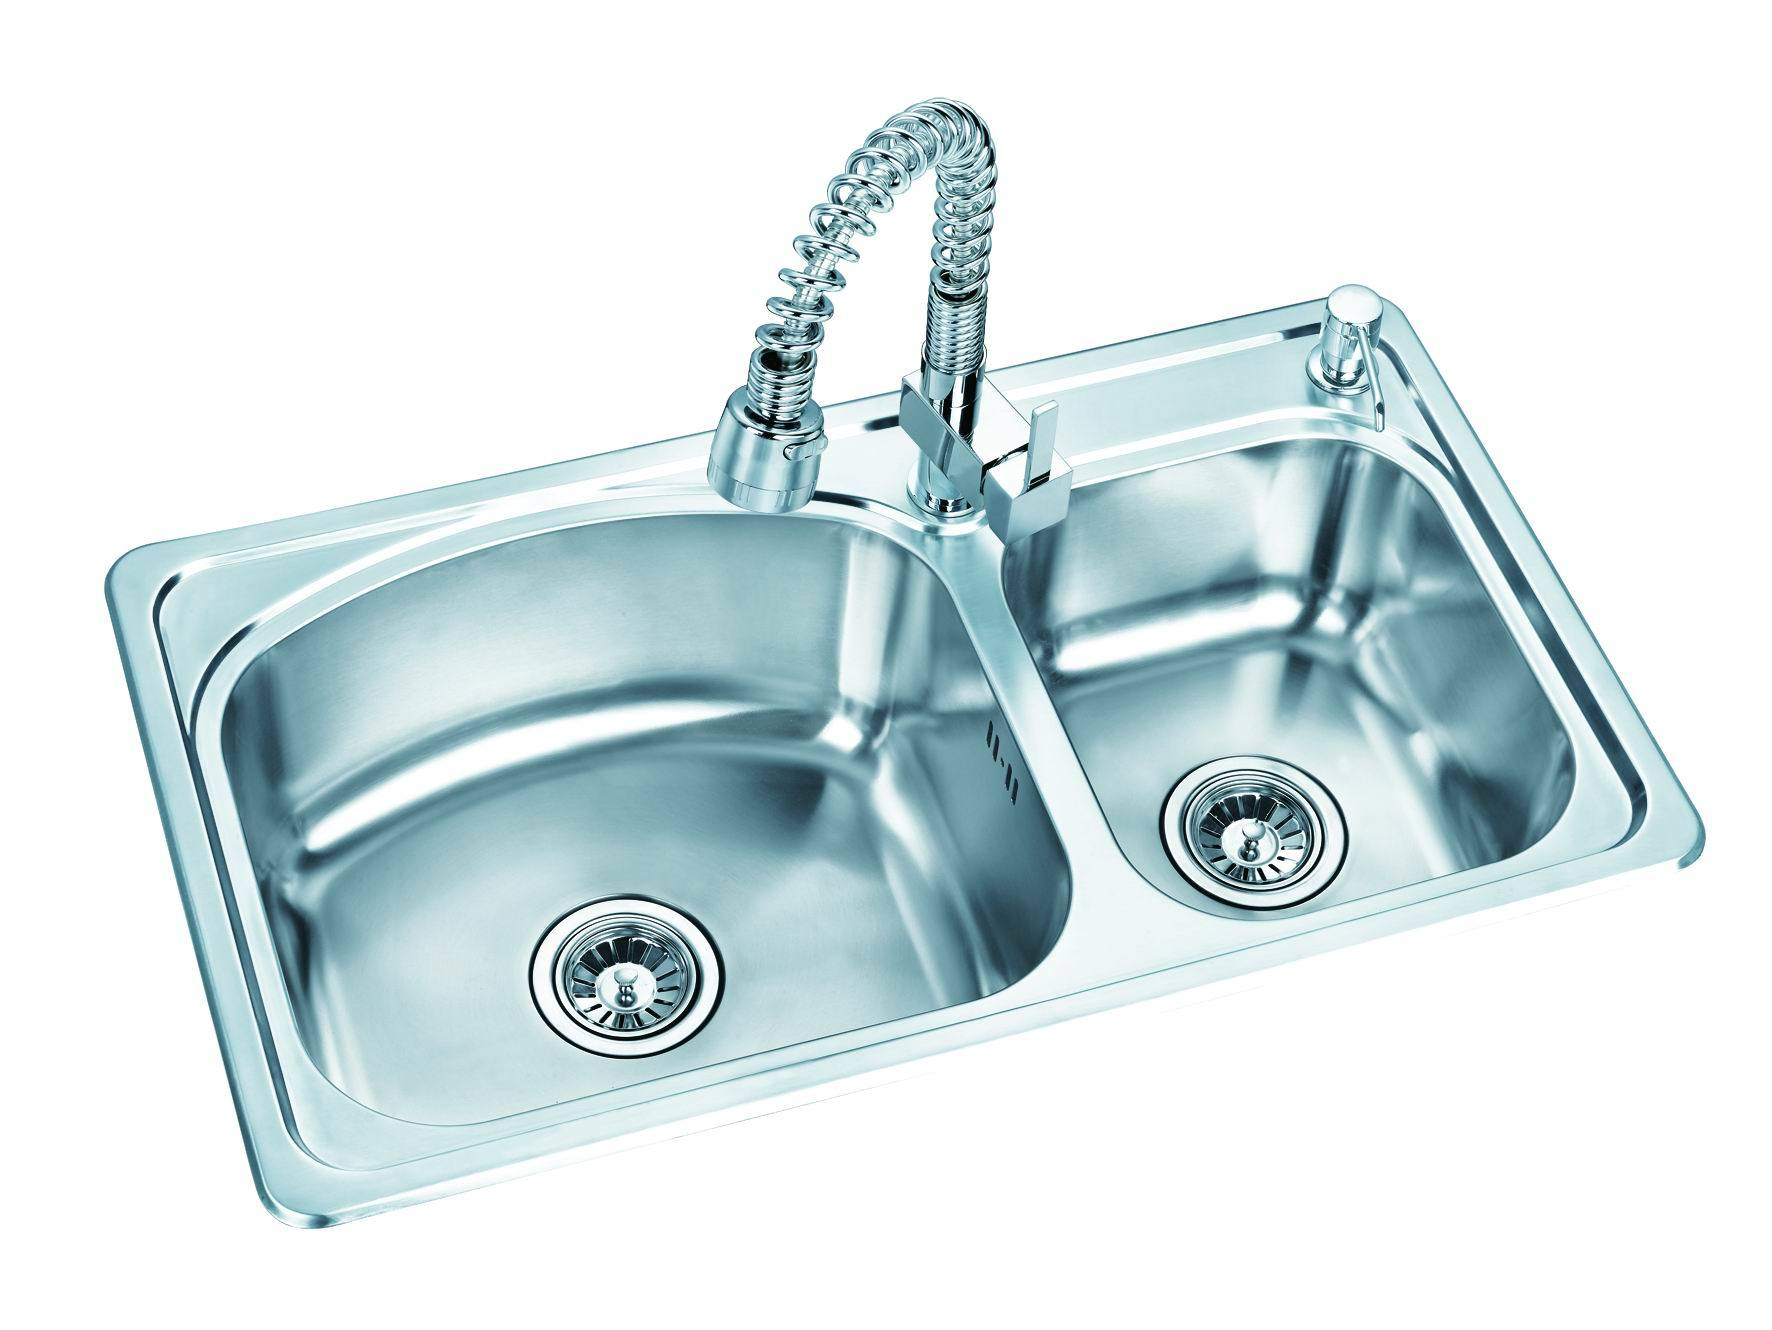 Stainless Steel Sink (KS-002) - China Sink, &kitchen sink